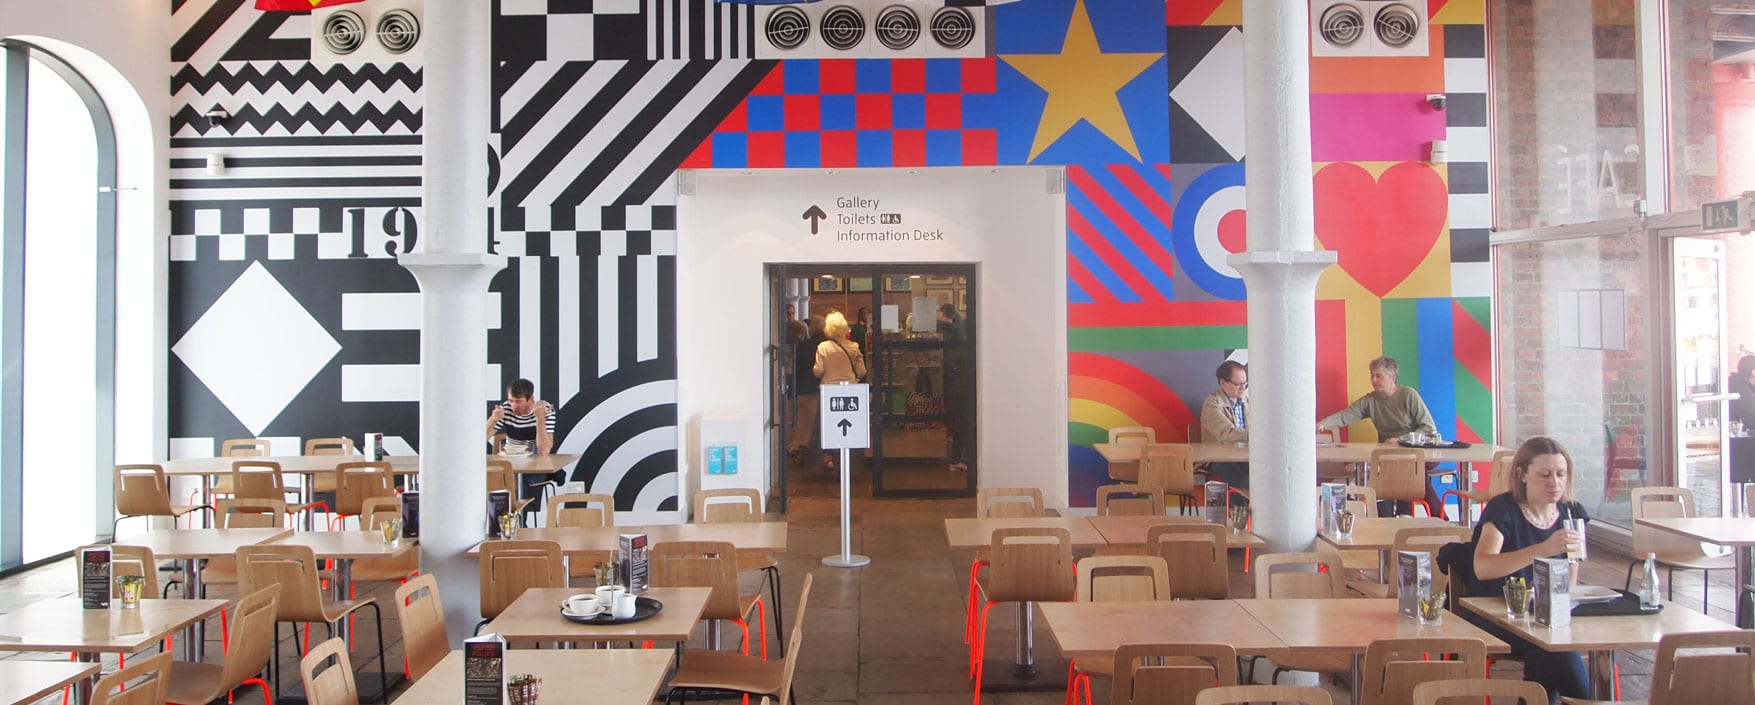 Architectural Emporium Tate Liverpool Cafe Sir Peter Blake